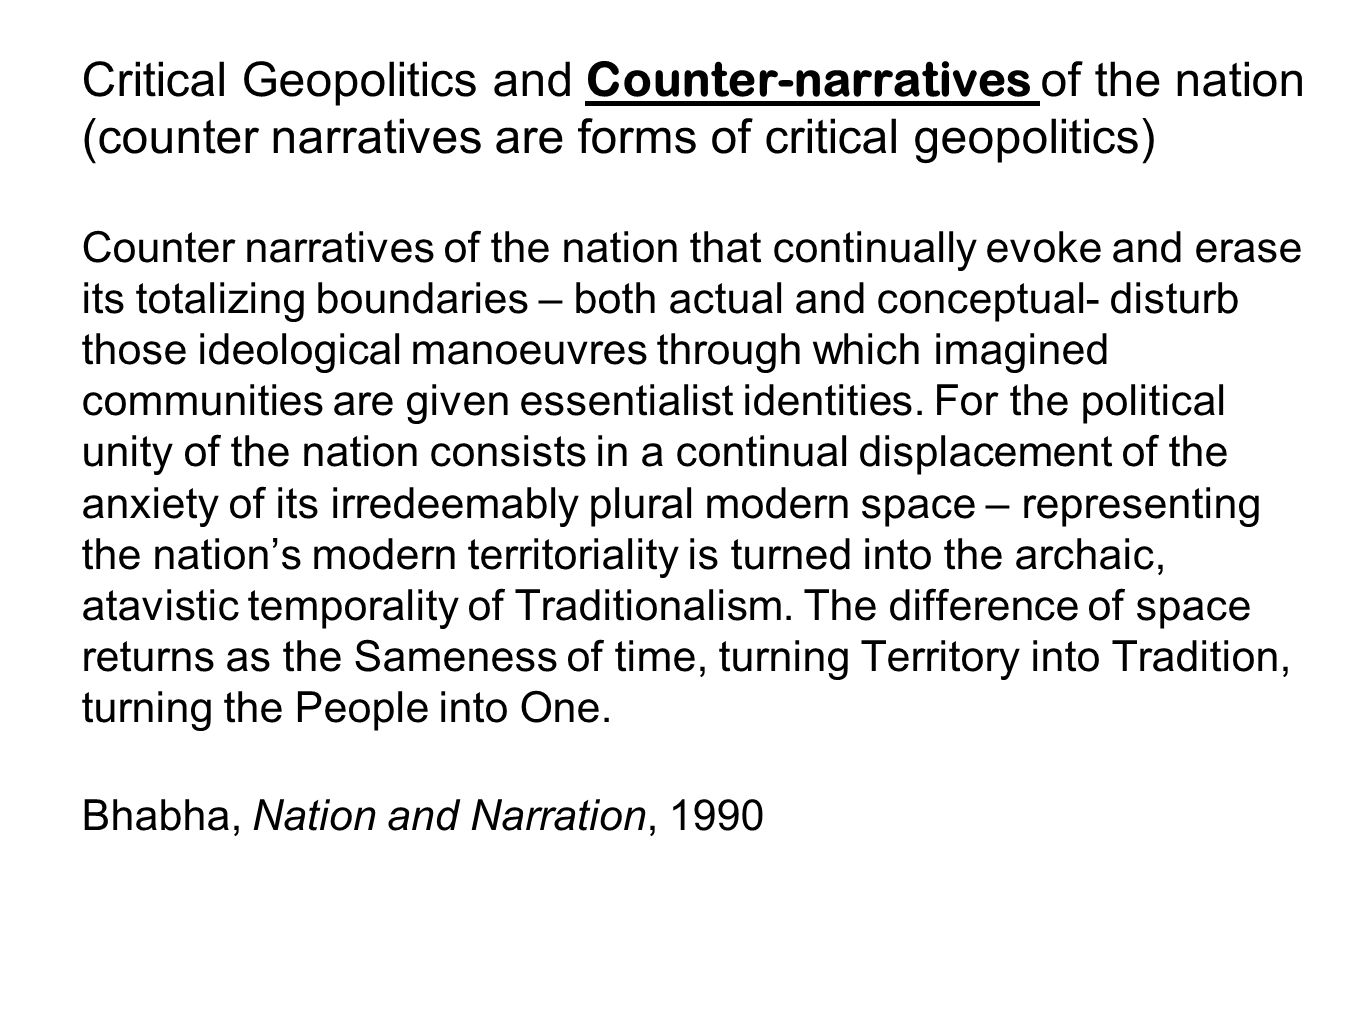 Critical Geopolitics and Counter-narratives of the nation (counter narratives are forms of critical geopolitics)